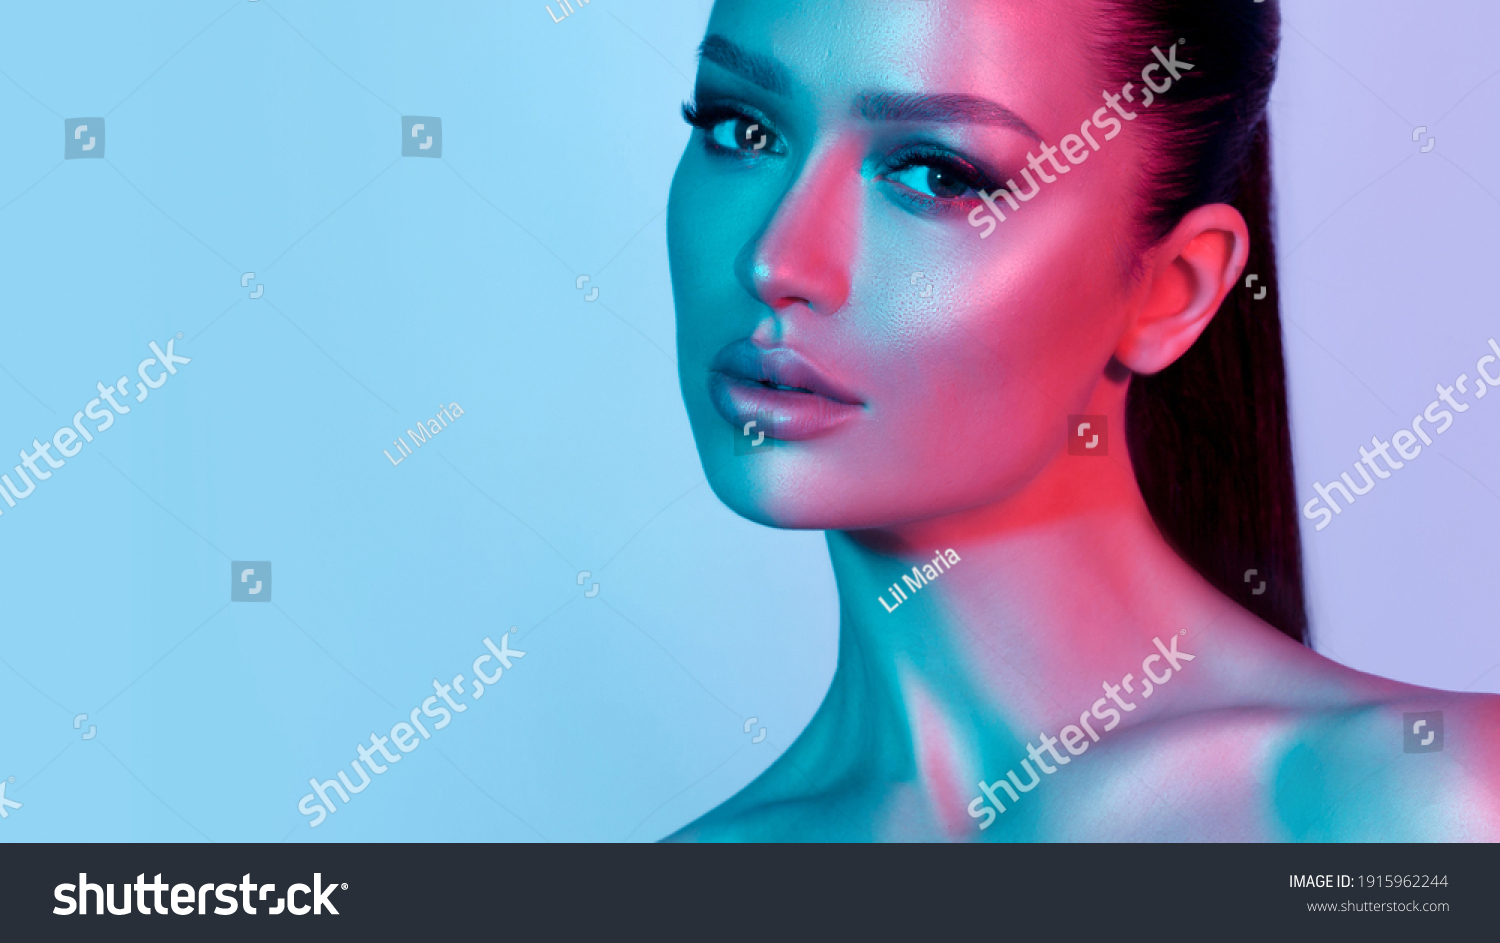 High fashion model metal silver lips and face woman in colorful bright neon UV blue and purple lights, posing in studio, beautiful girl, glowing makeup, colorful makeup. Glitter Bright Neon Makeup #1915962244